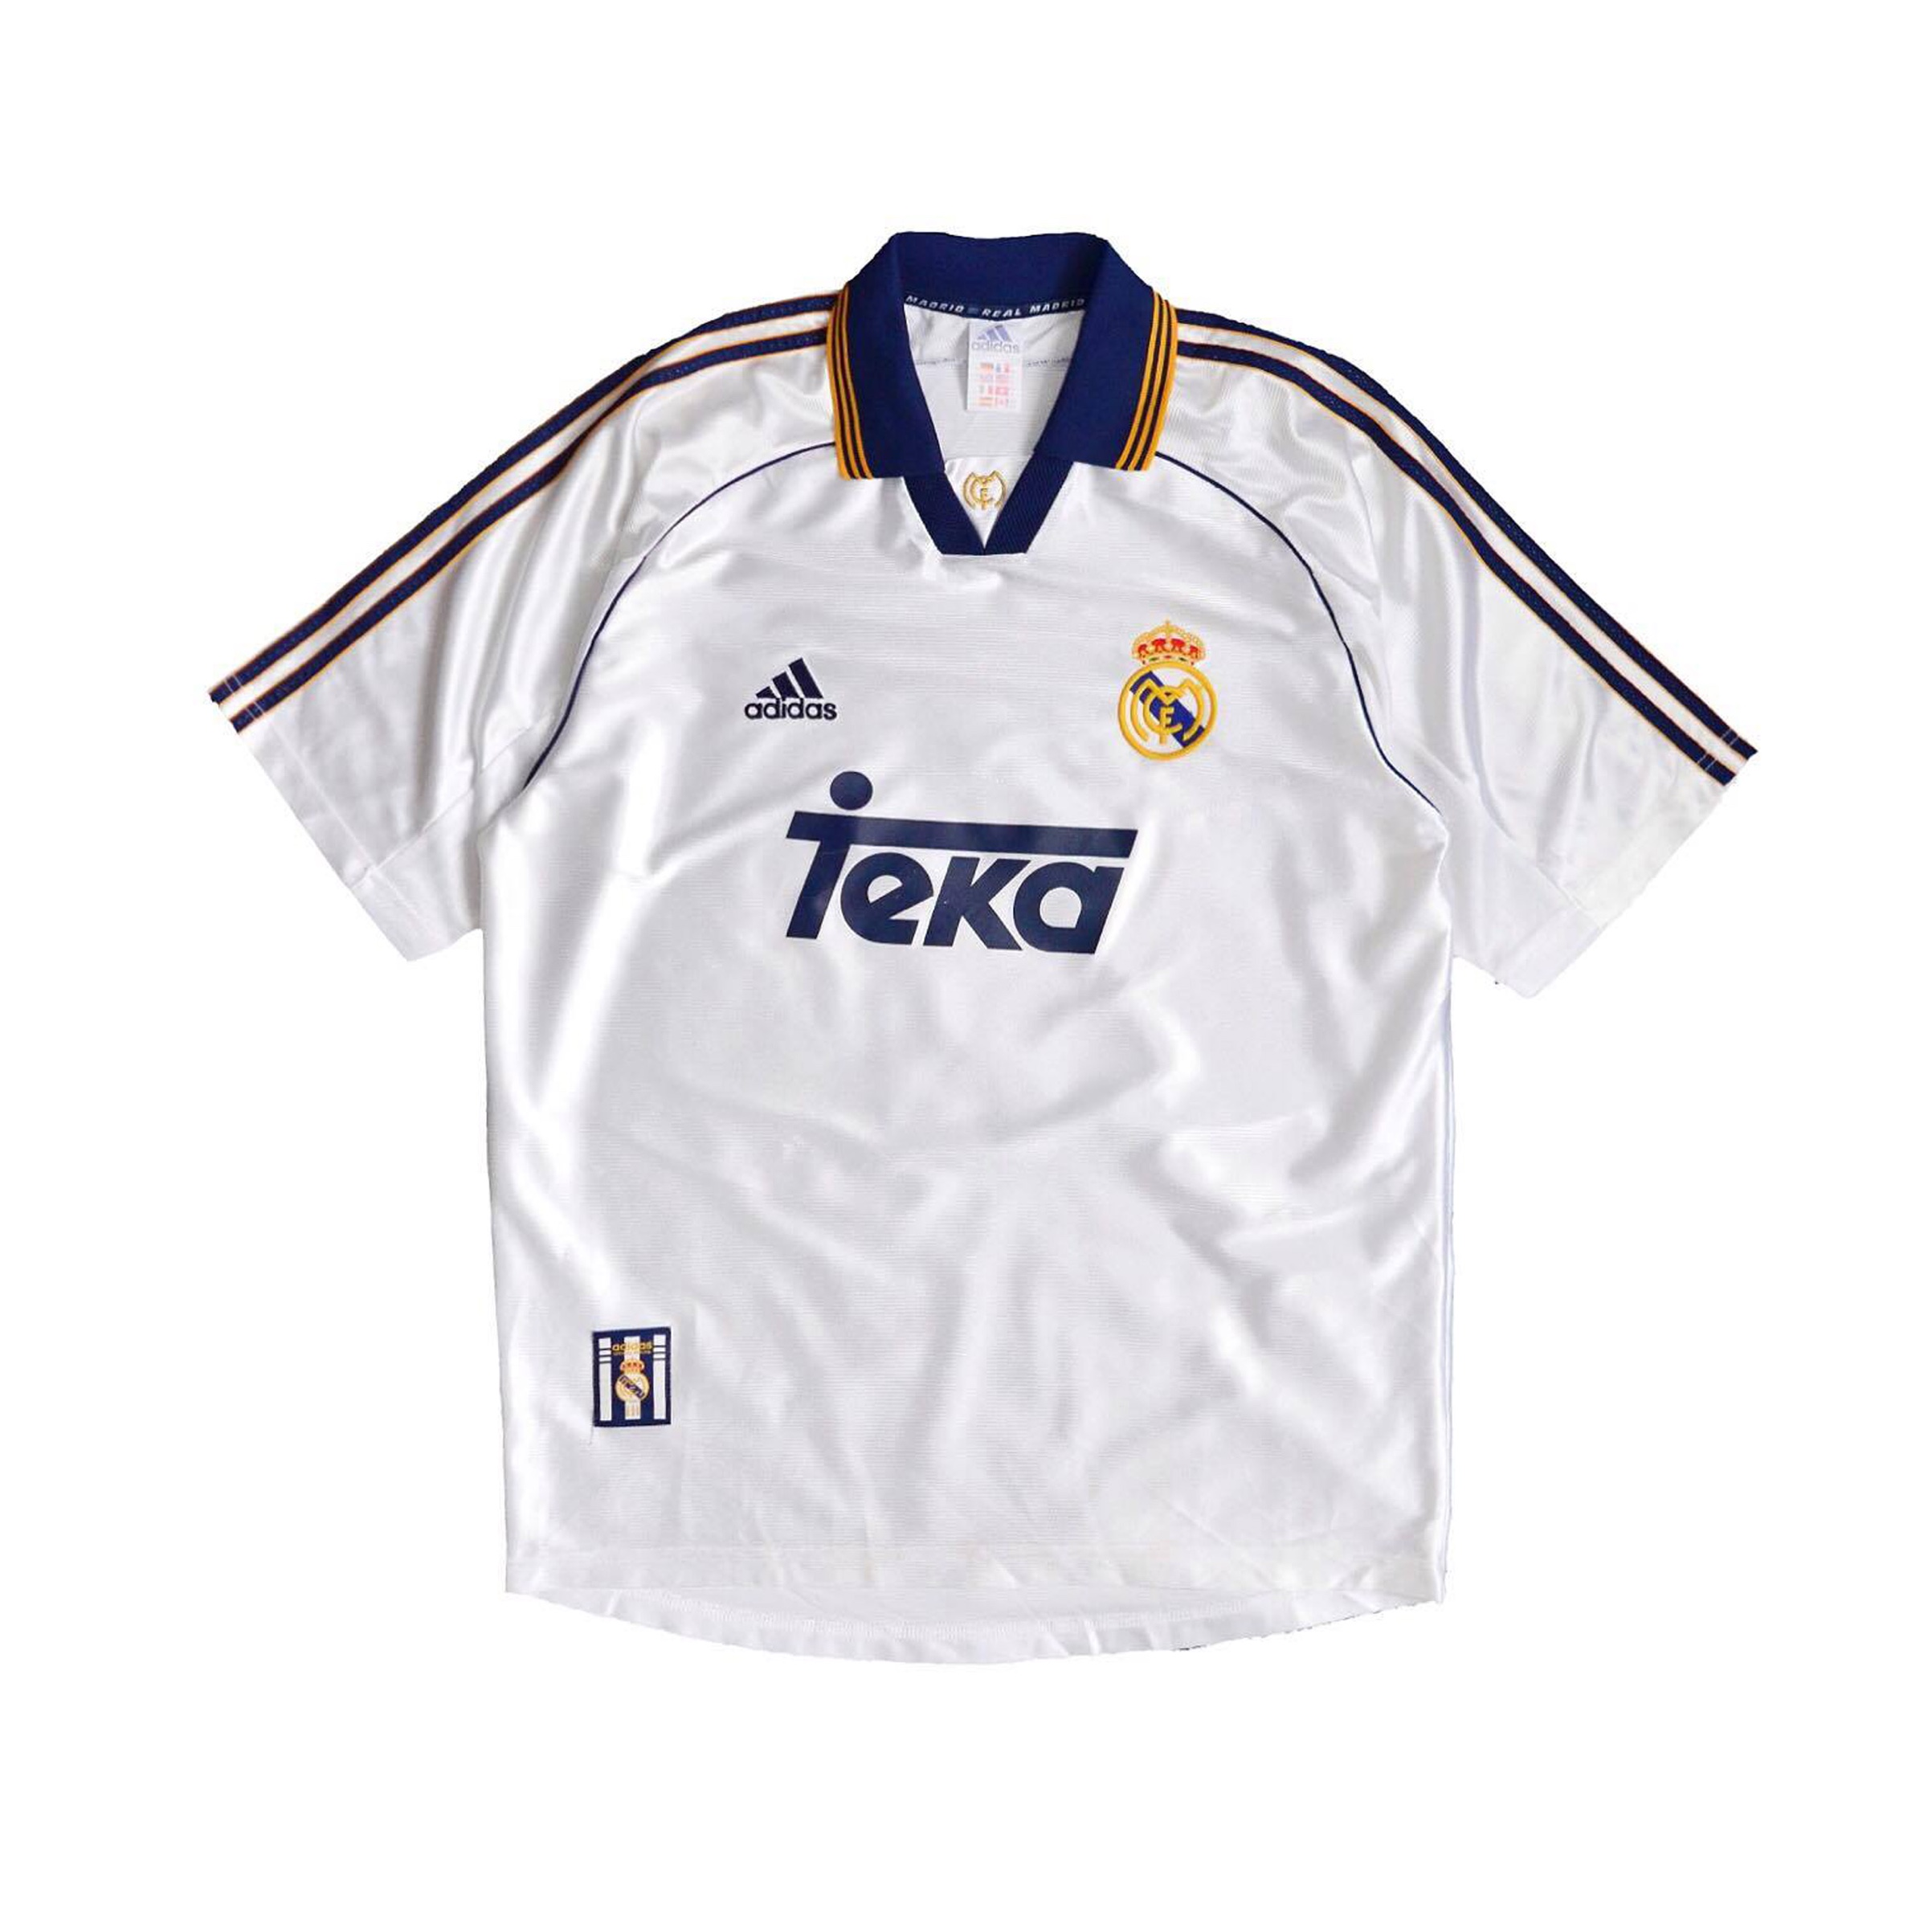 new styles ee6e2 d9ede Real Madrid vintage 2000-2001 jersey with teka... - Depop